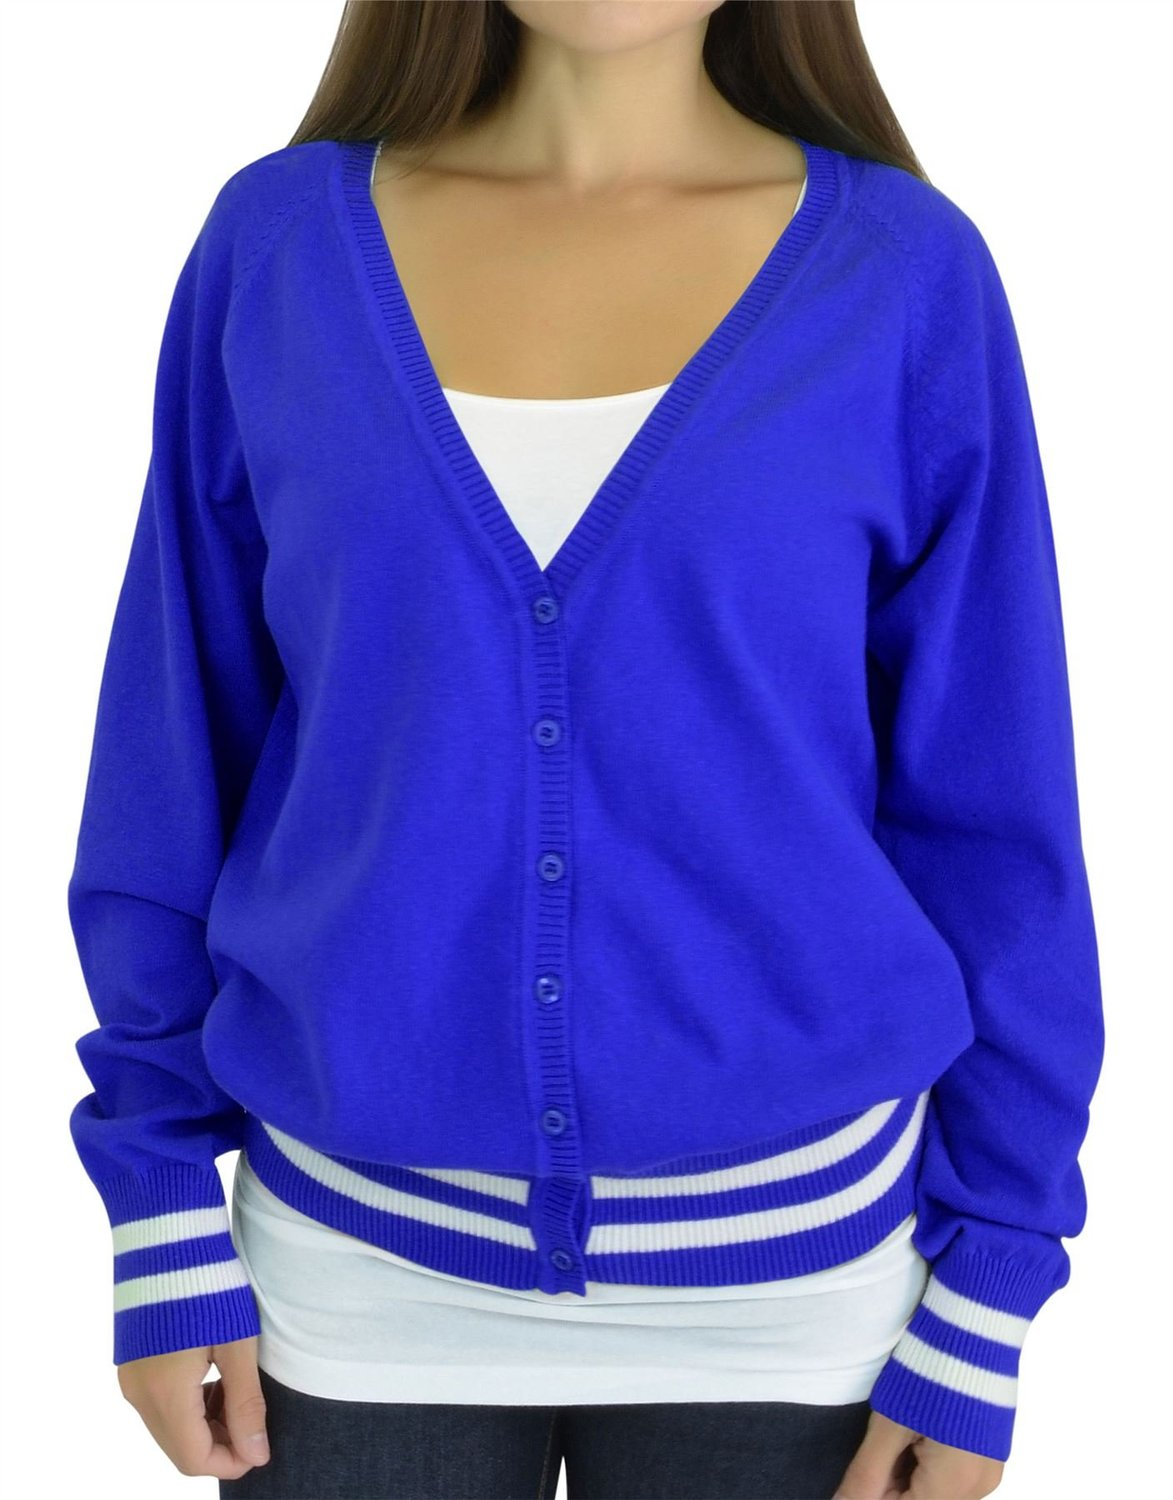 Belle Donne - Women's Plus Size Trendy Bottom Double Stripe V-Neck Long Sleeve Cardigan - Bright Royal/Ivory, XL